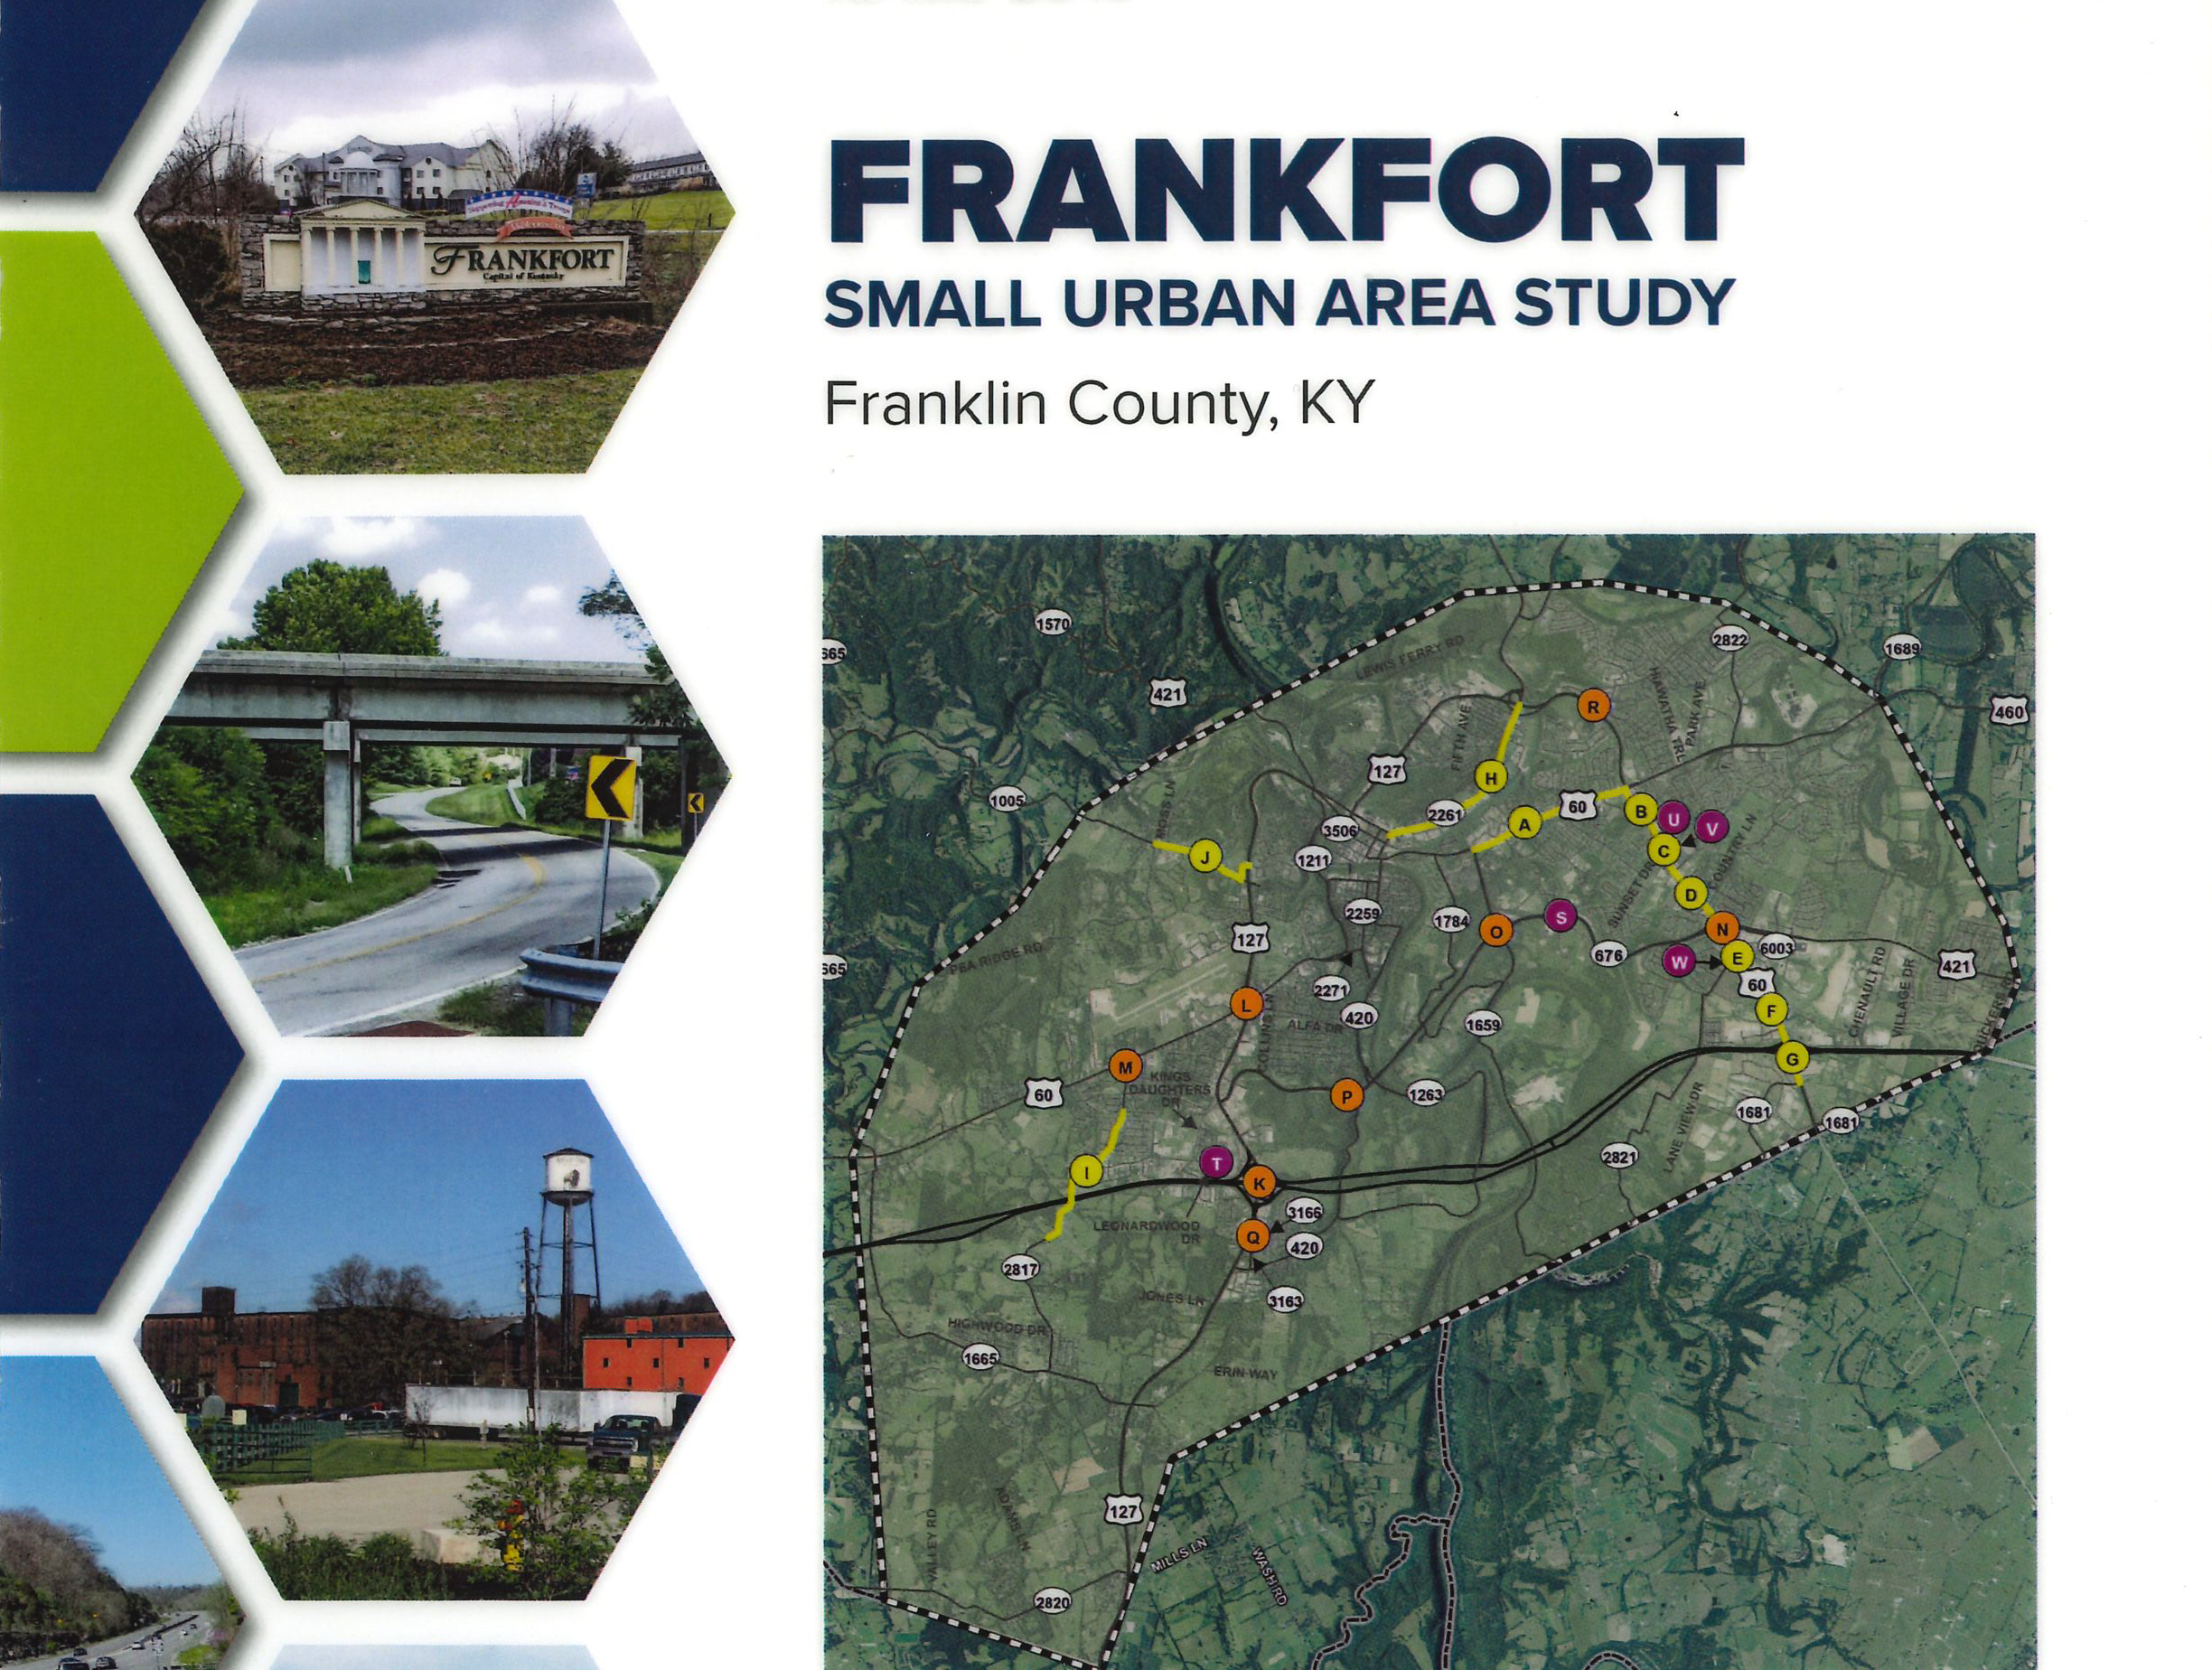 Frankfort 2019 Small Urban Area Transportation Study